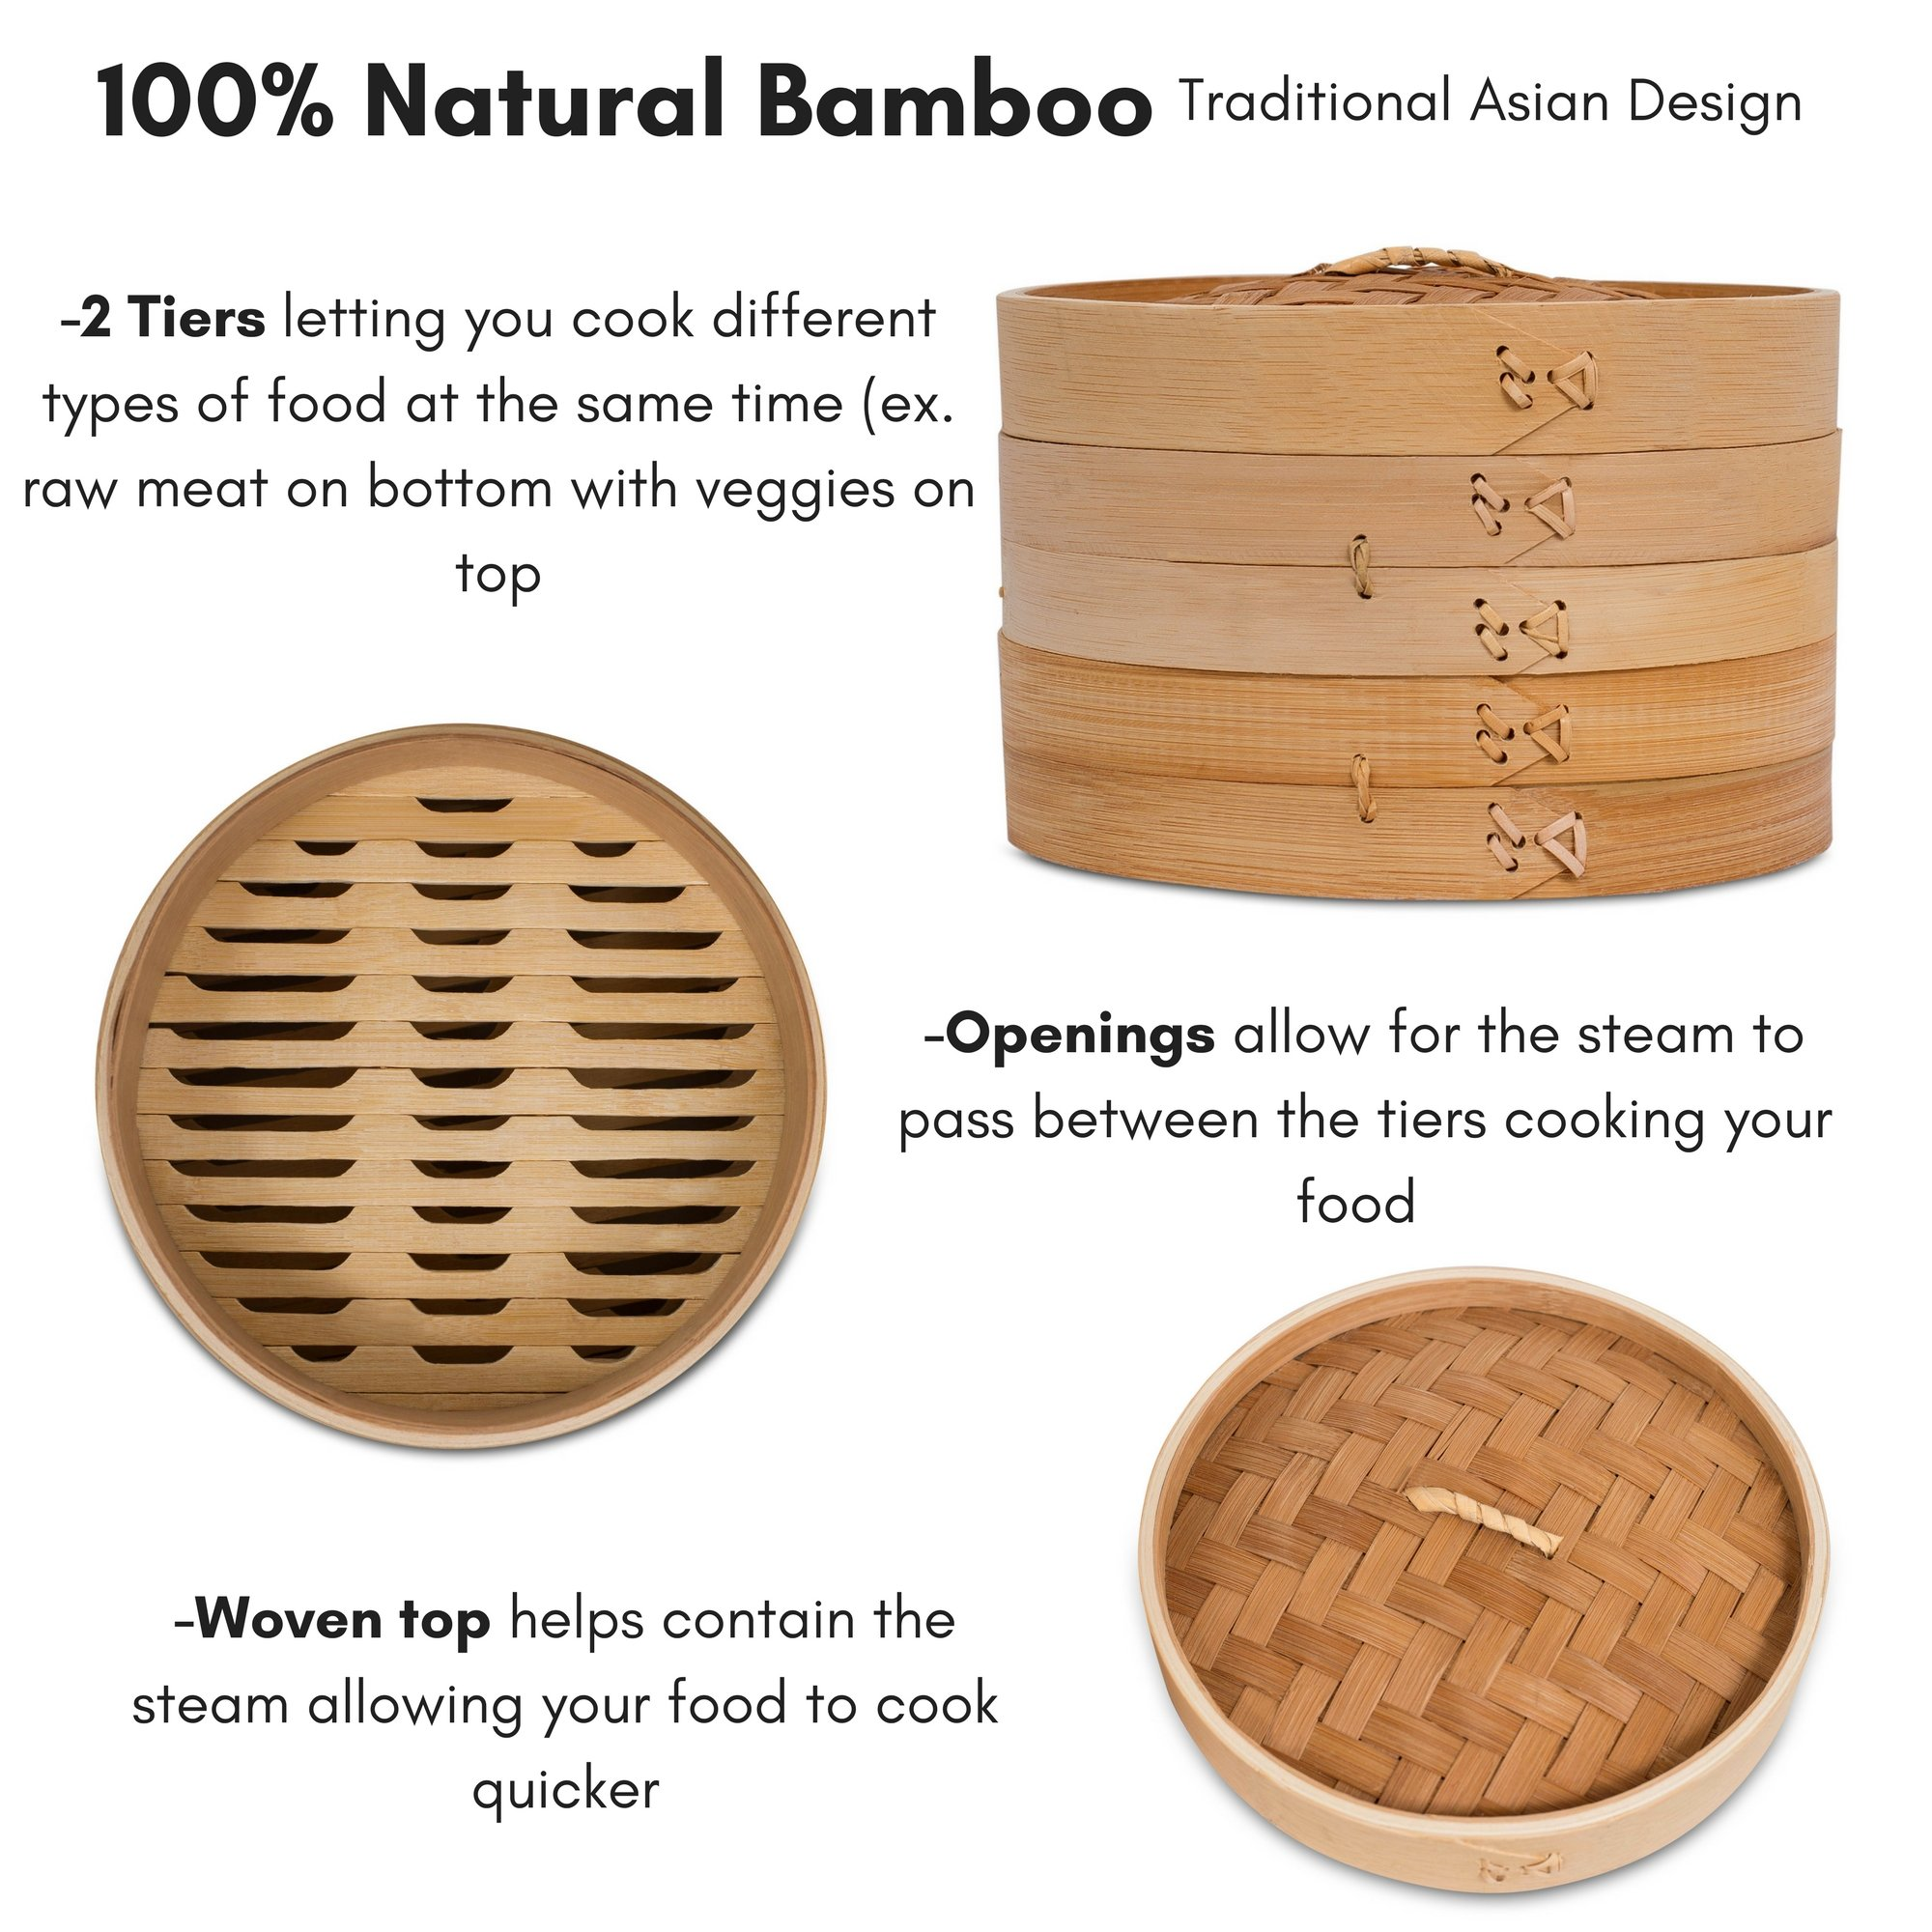 BirdRock Home 10 Inch Bamboo Steamer | Classic Traditional Design | Healthy Cooking | Great for dumplings, vegetables, chicken, fish | Steam Basket | Natural by BirdRock Home (Image #6)